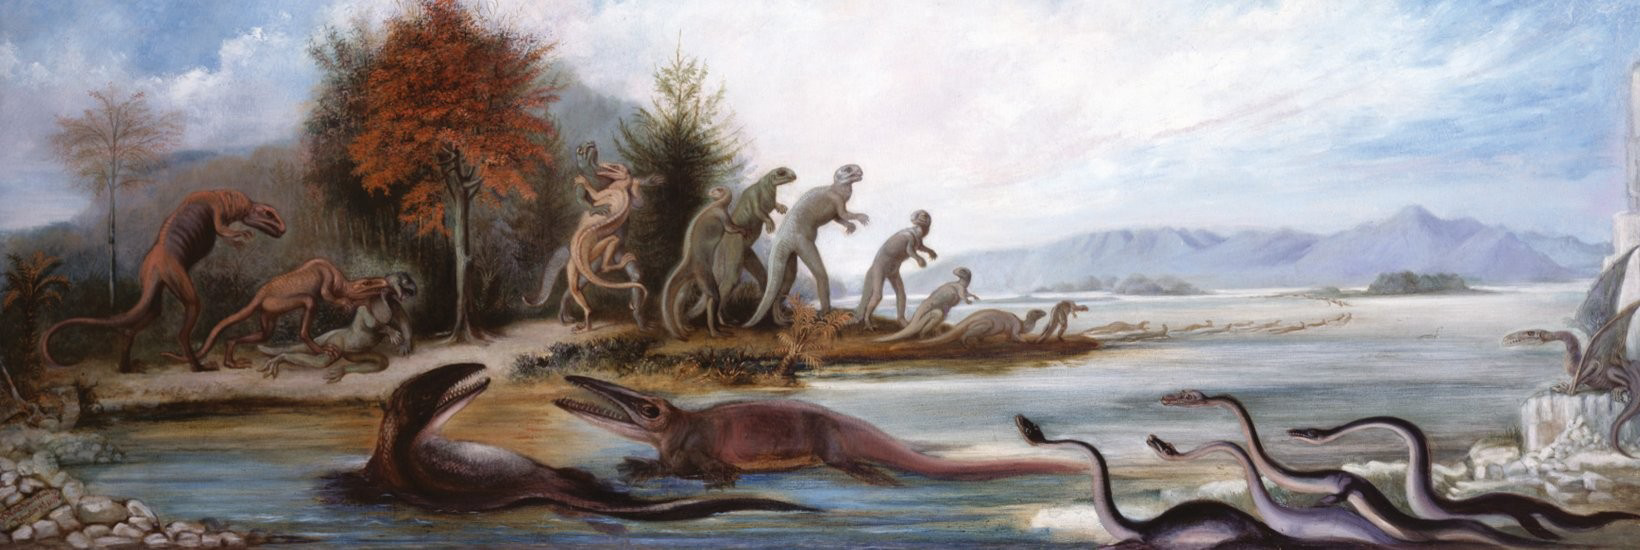 Picture of Paleoart. Visions of the Prehistoric Past